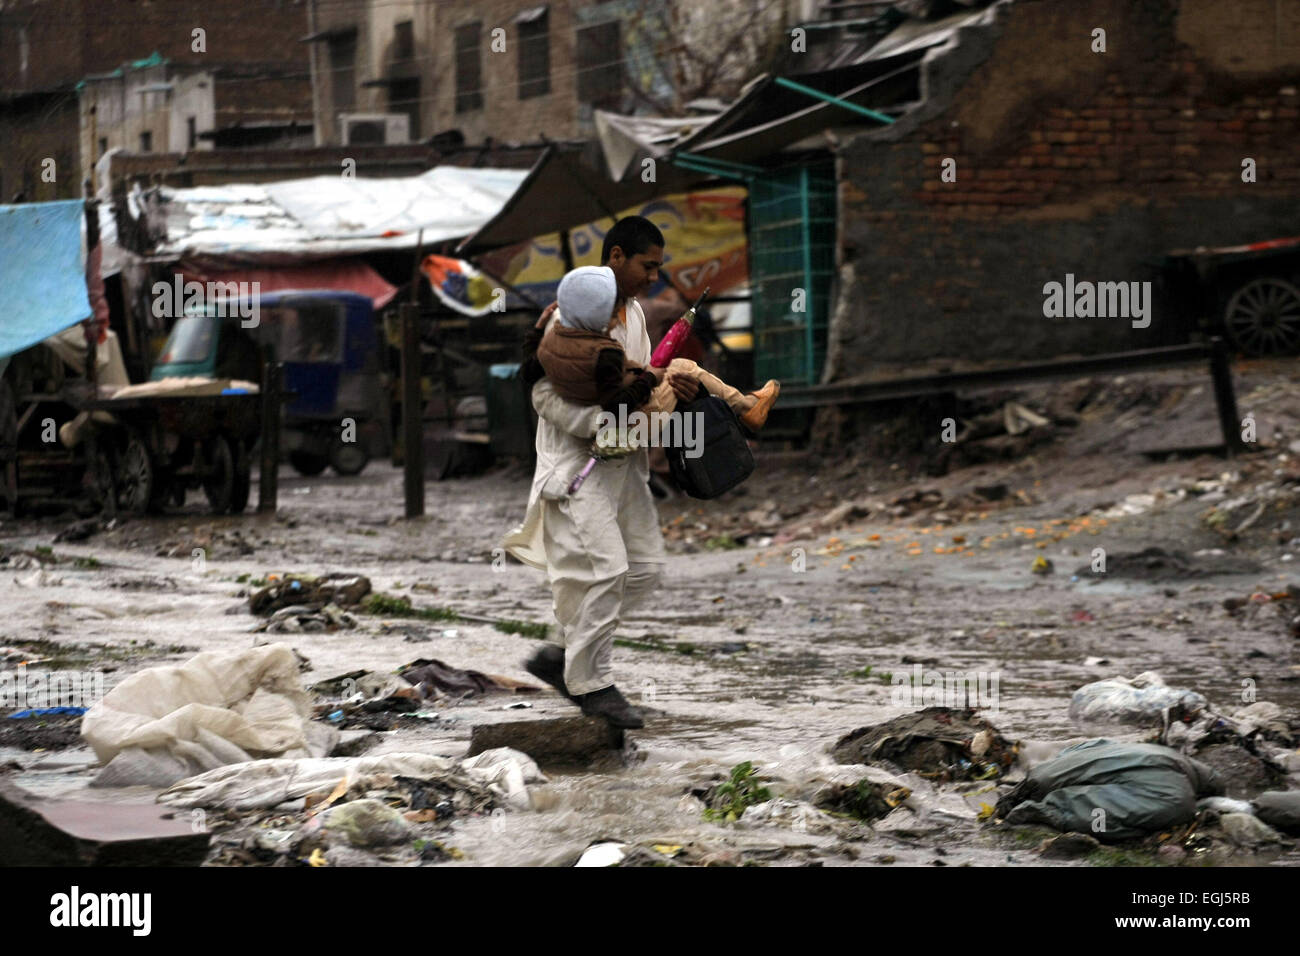 Peshawar, Pakistan. 25th Feb, 2015. A man carries a child as he crosses a waterlogged street after heavy rain in - Stock Image